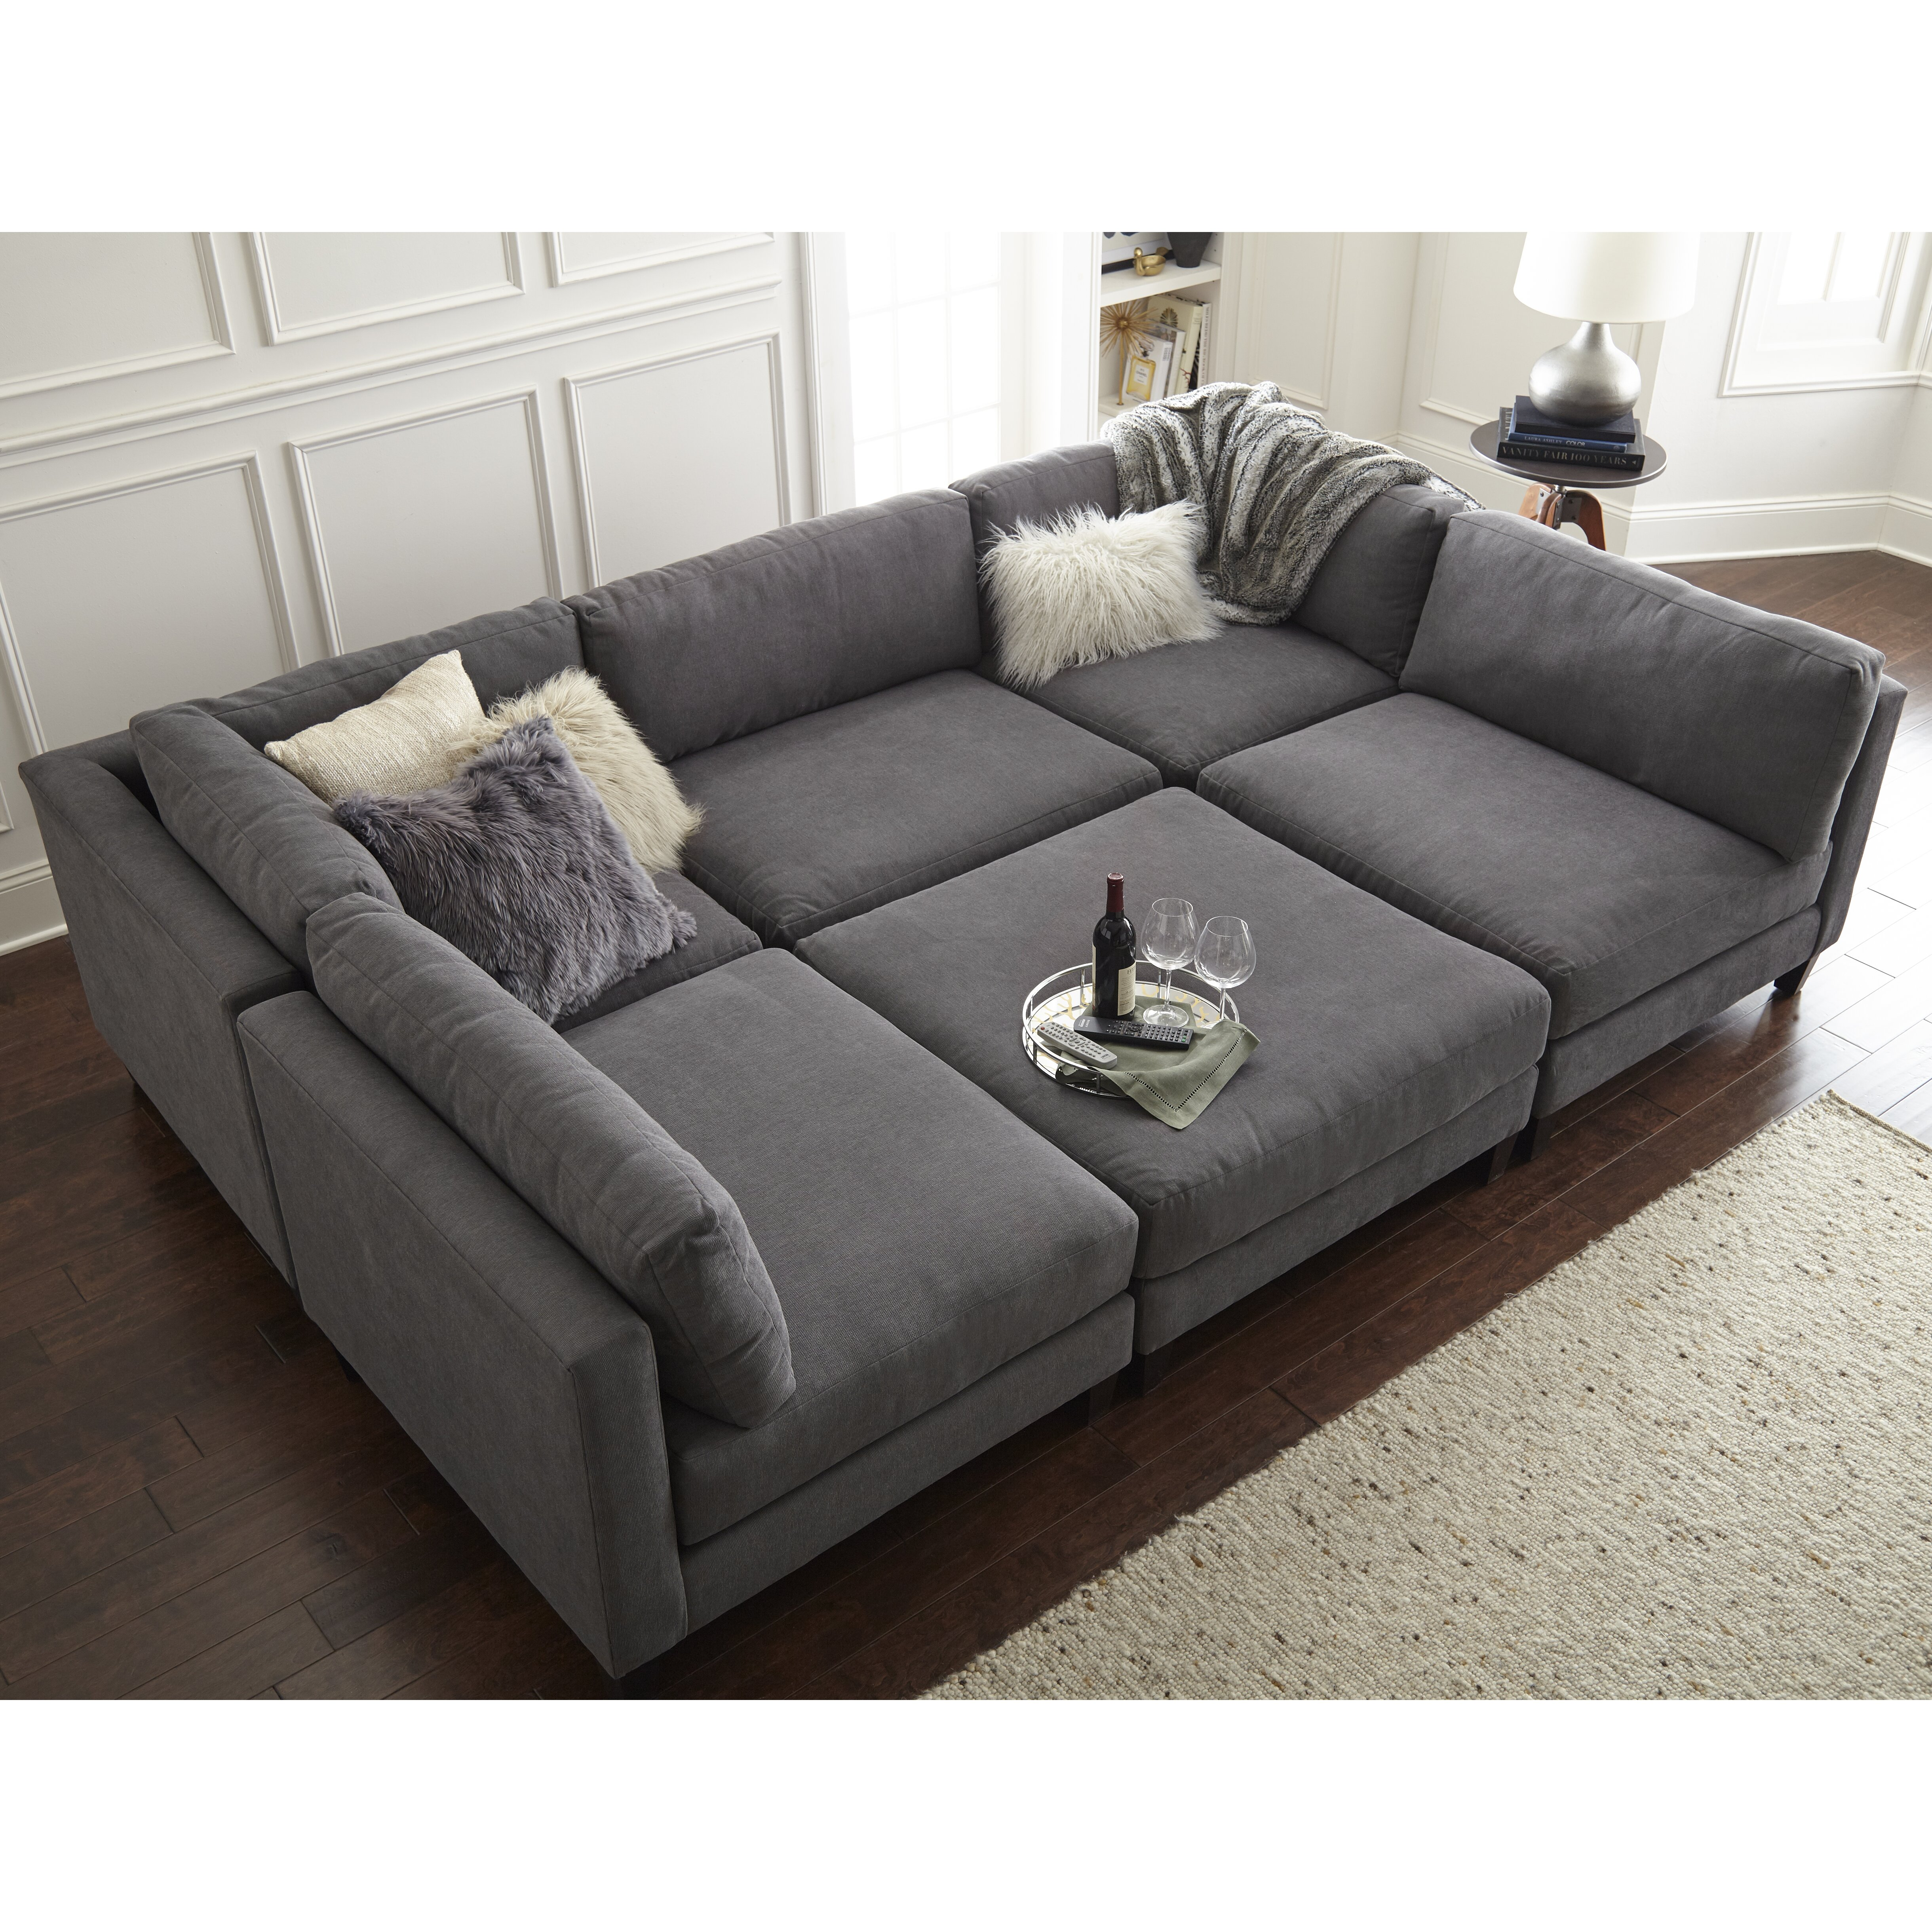 Wayfair Furniture Sofa